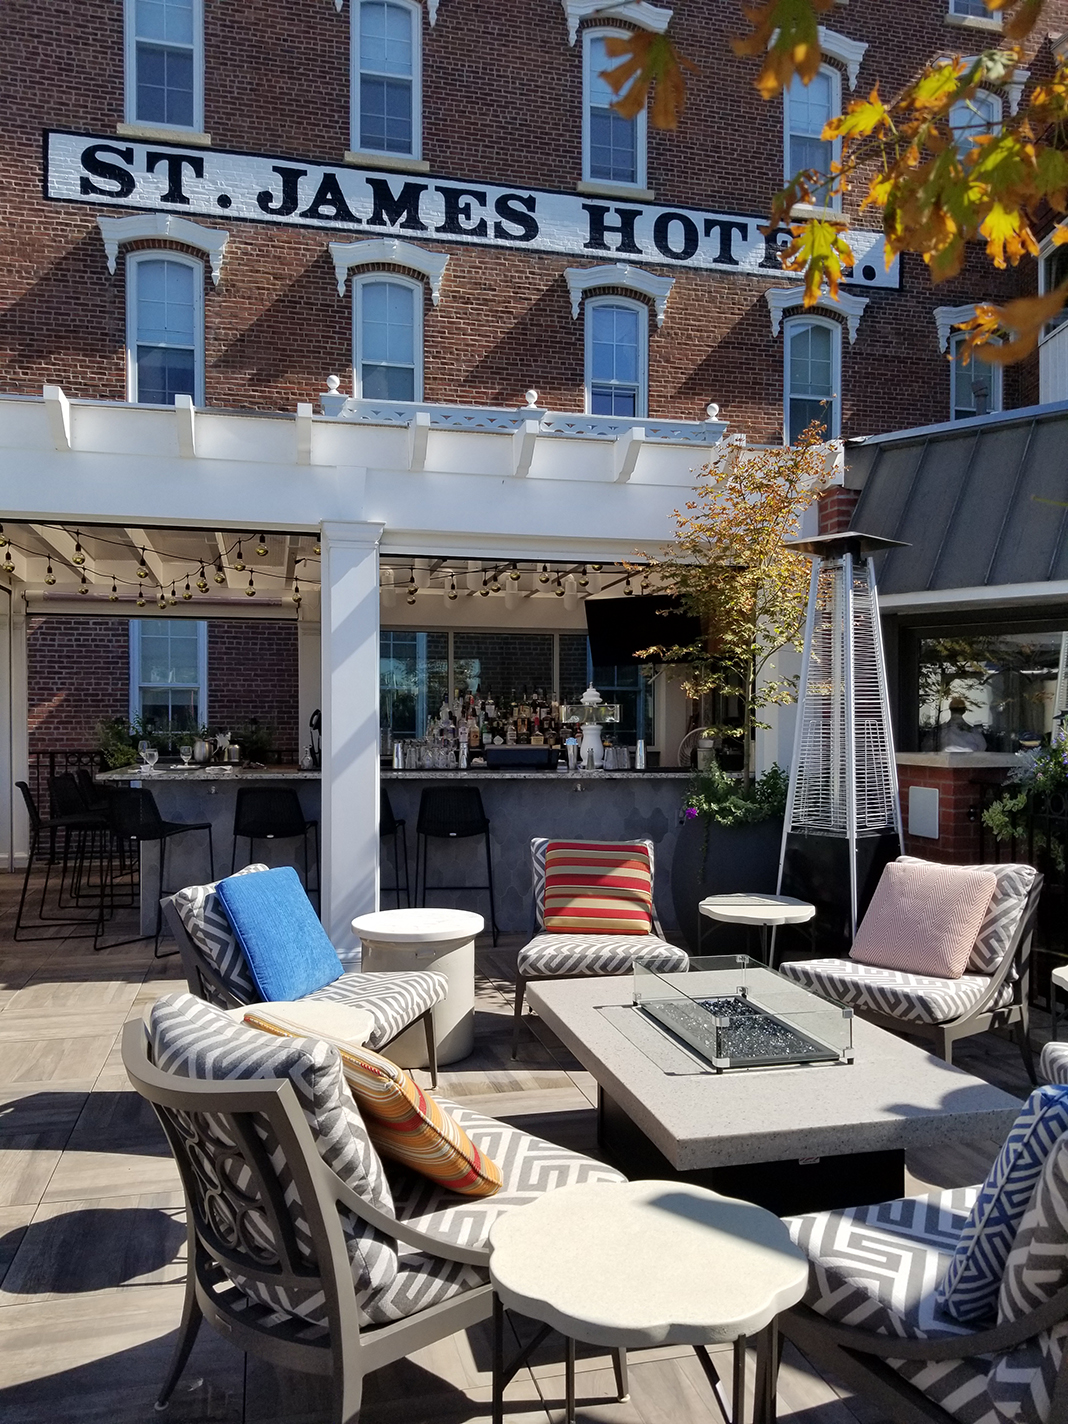 The Veranda at St. James Hotel in Red Wing, Minnesota.